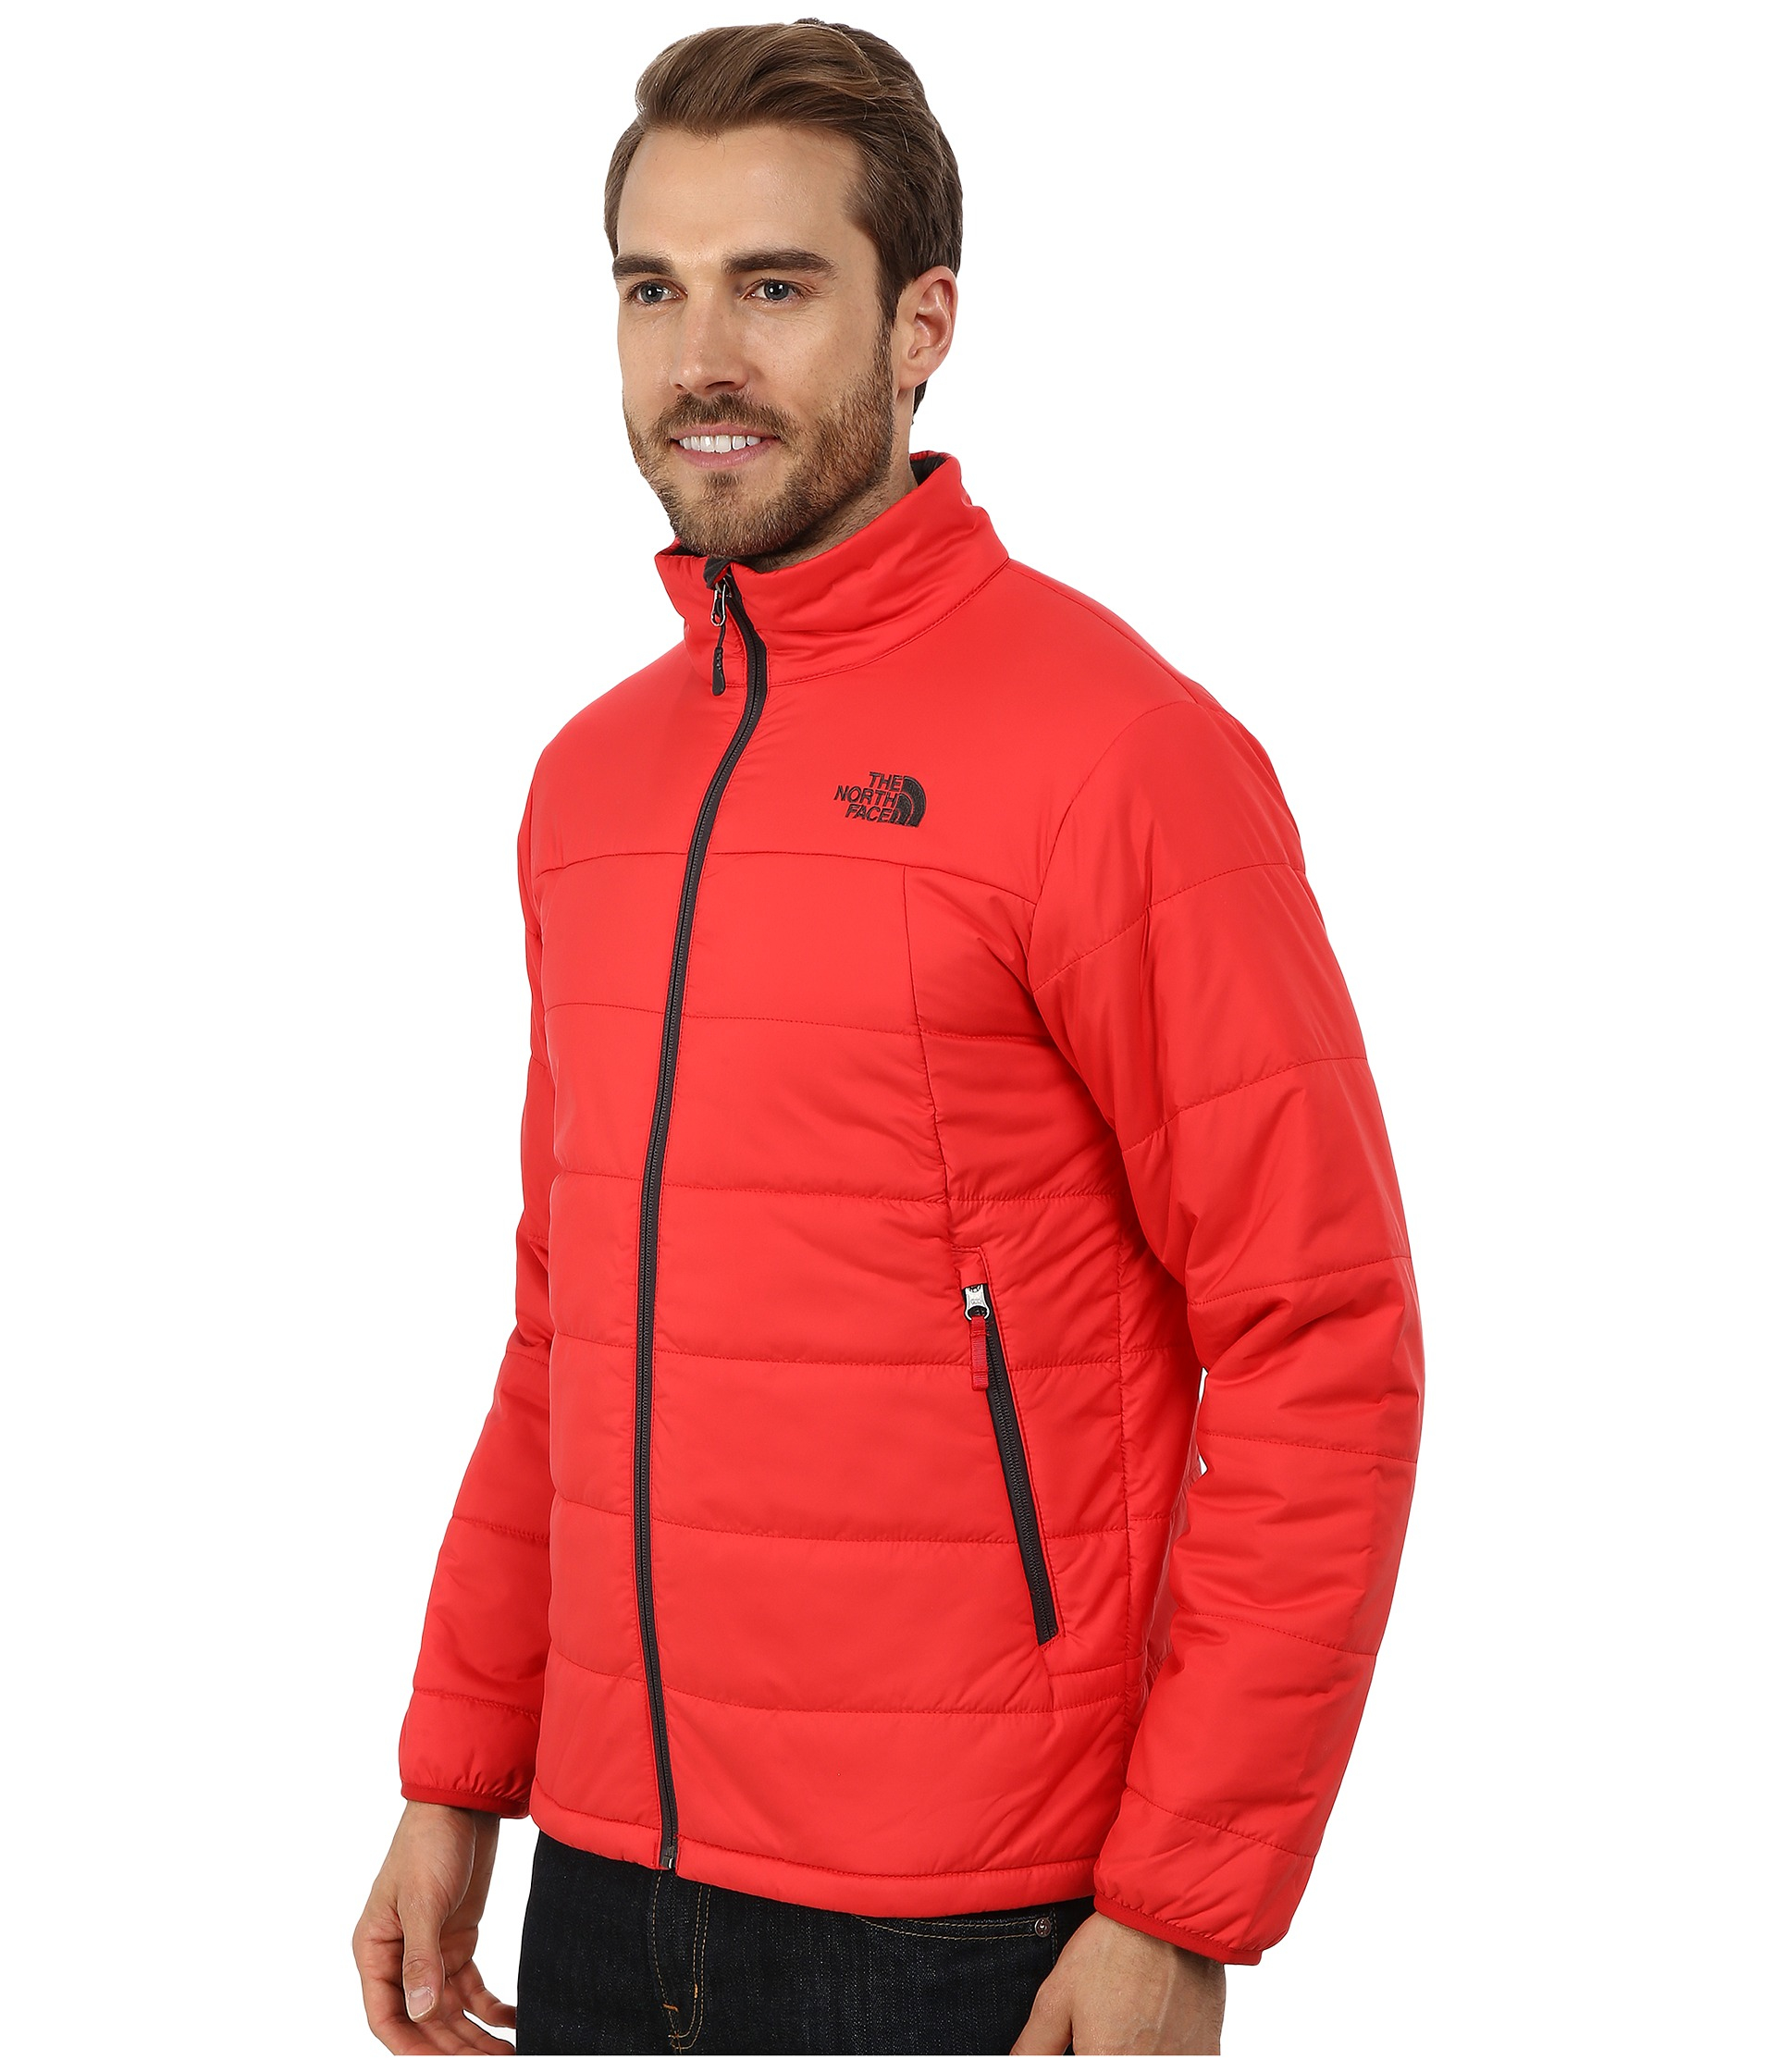 ... low price lyst the north face bombay jacket in red for men 8636c 4904d 9e704f234